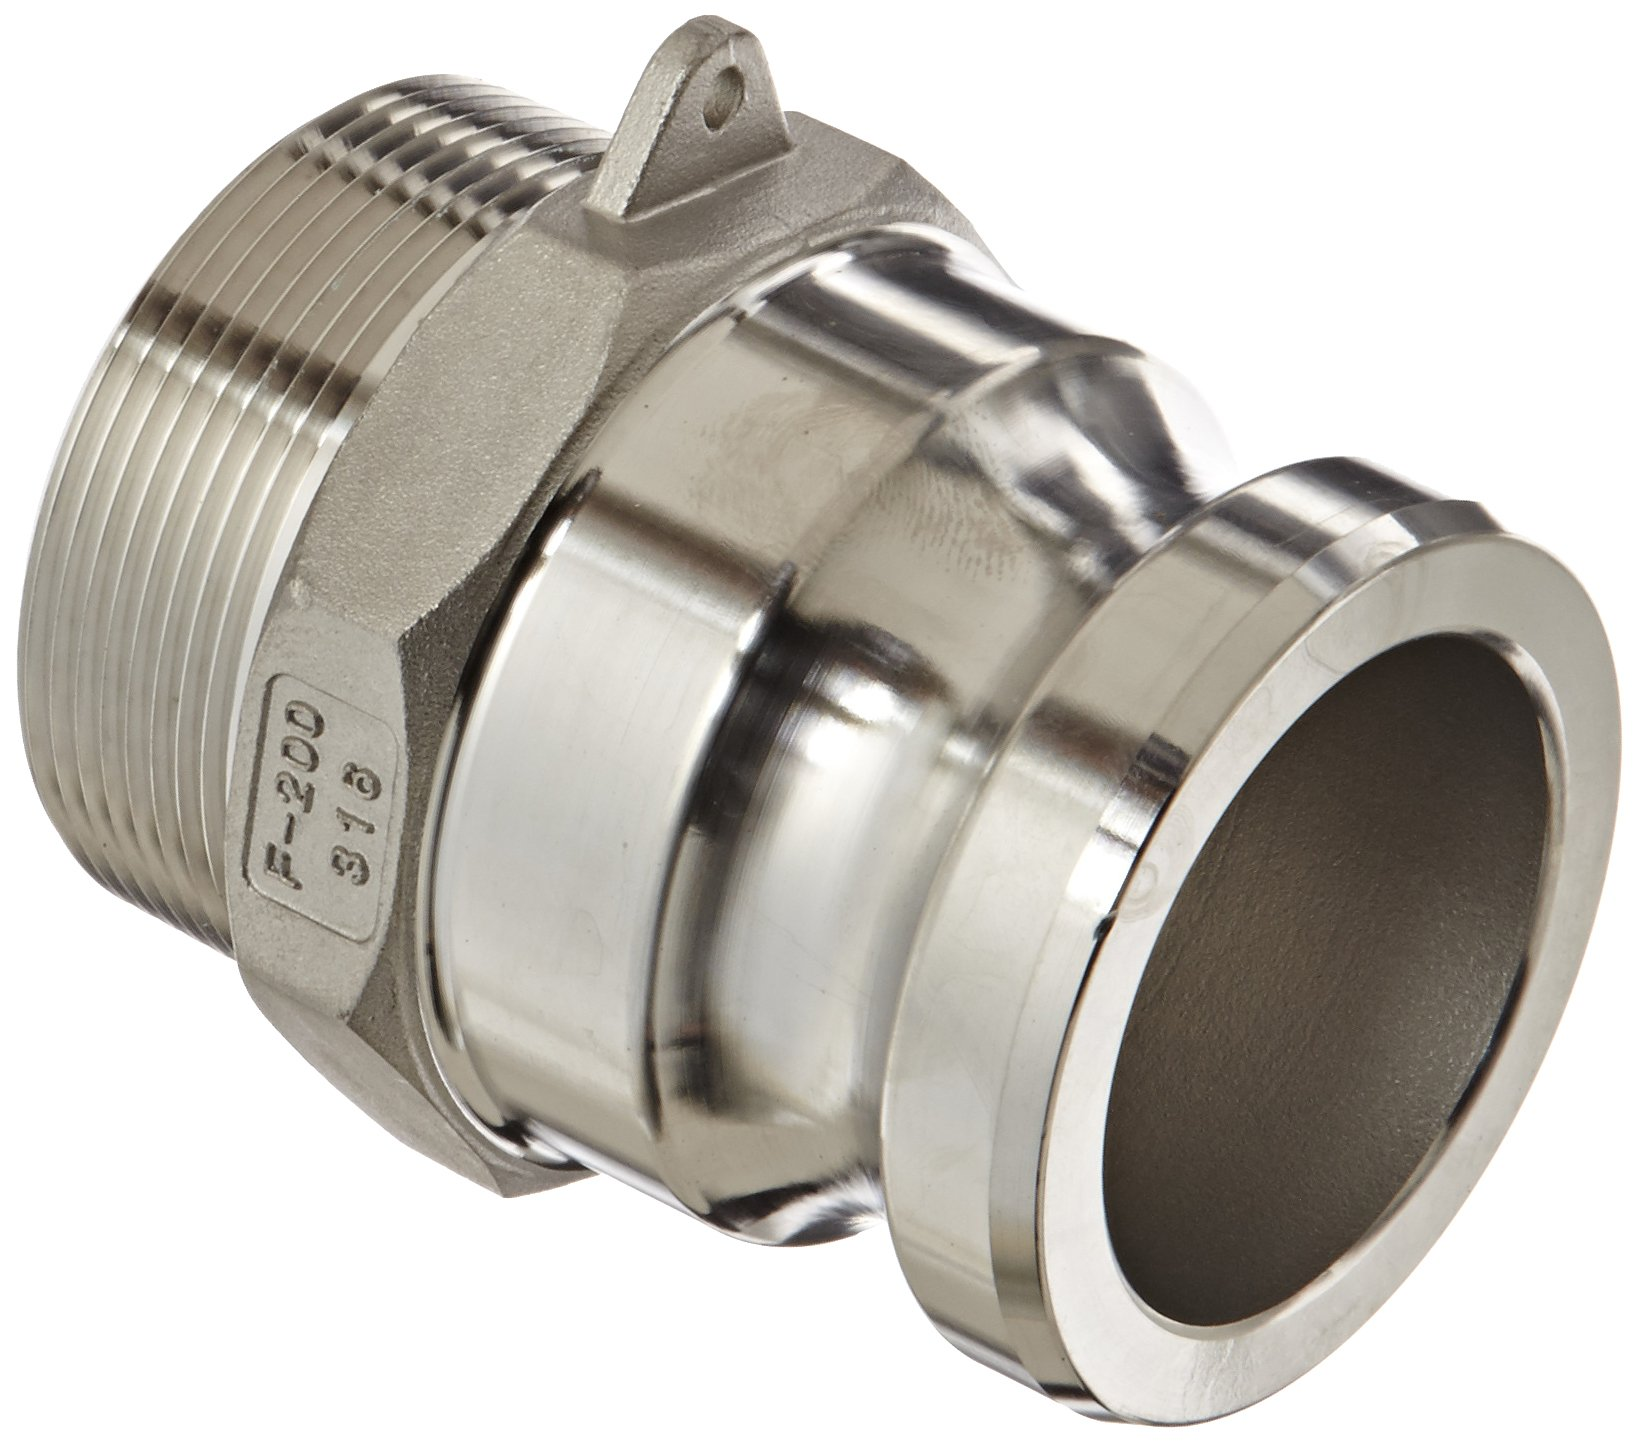 Dixon G200-F-SS Investment Cast Stainless Steel 316 Global Type F Cam and Groove Hose Fitting, 2'' Plug x 2'' NPT Male